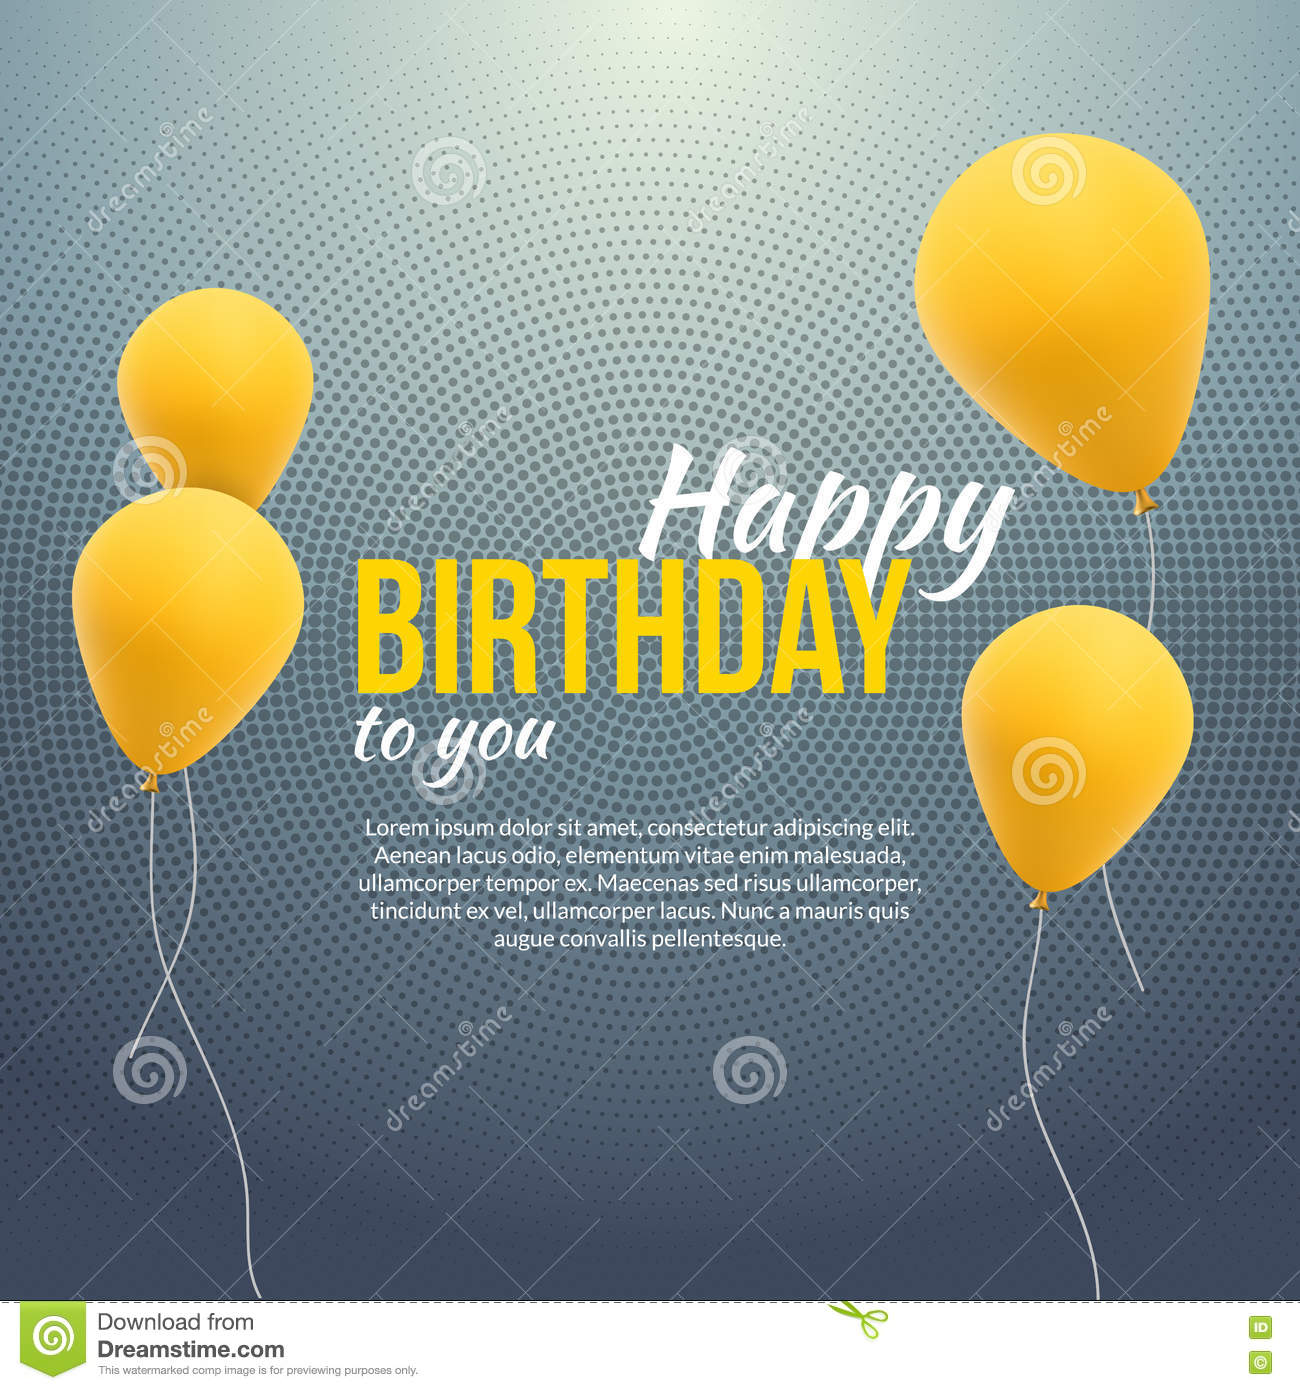 happy birthday poster template ; happy-birthday-poster-background-yellow-balloons-text-happy-birthday-invitation-template-banner-flyer-72708194